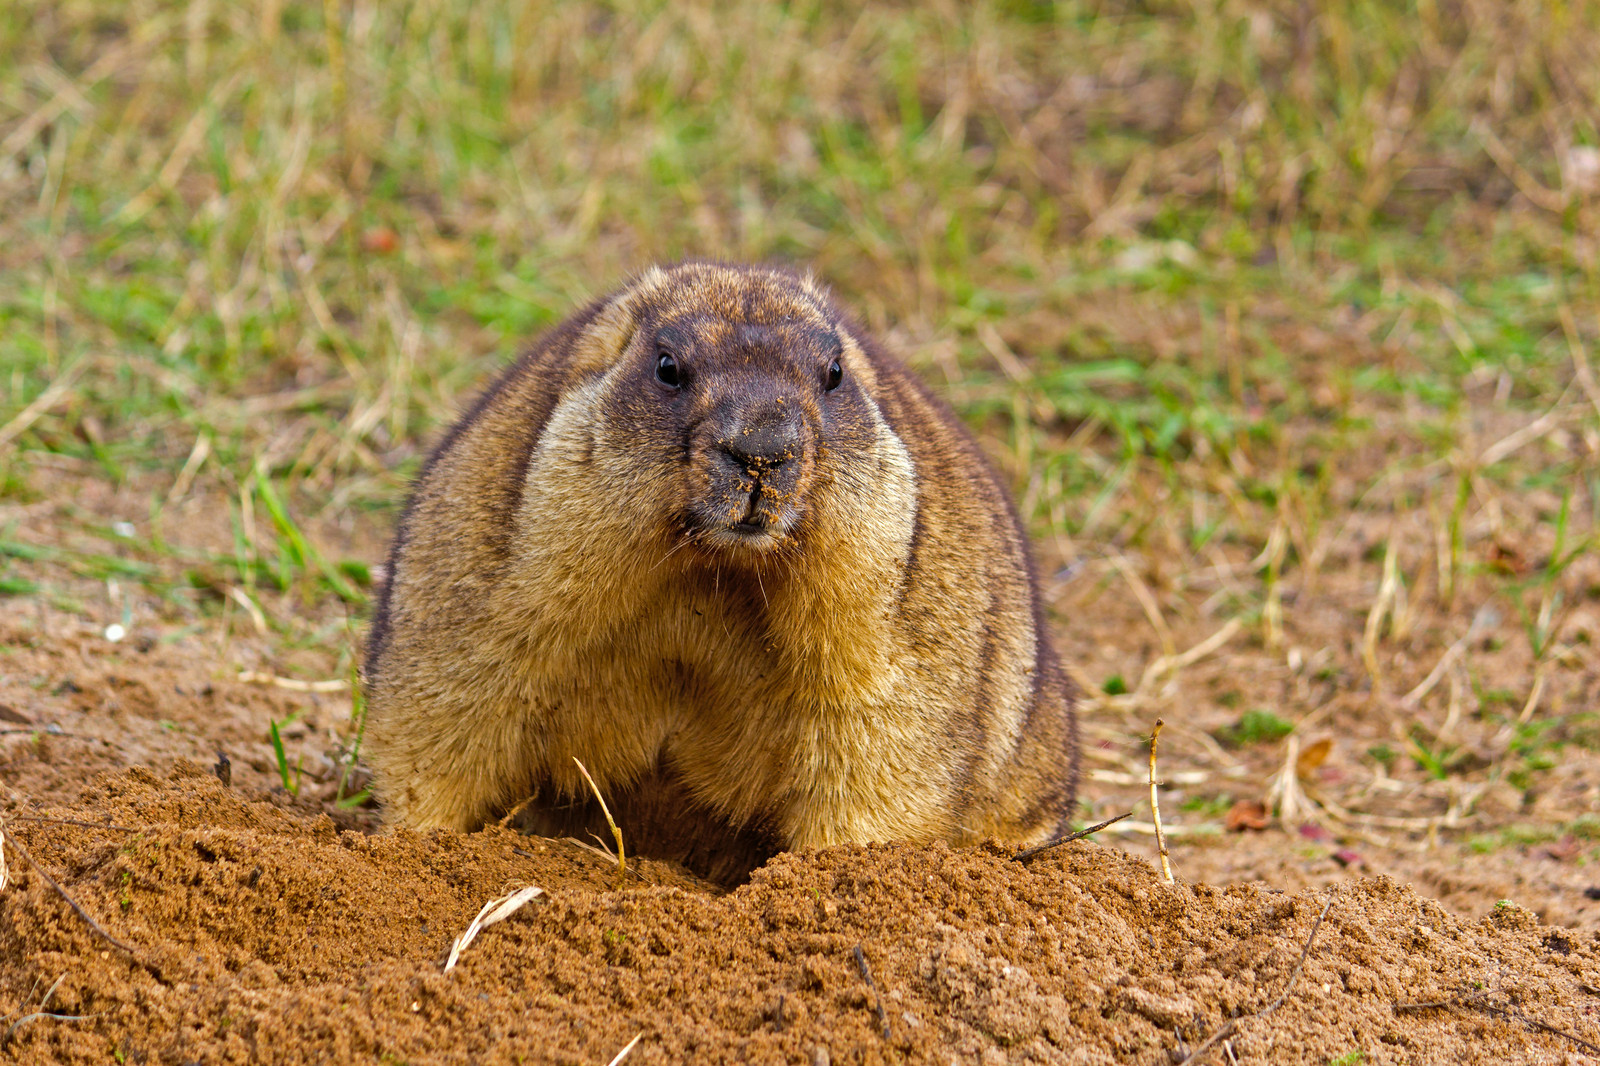 Regaling Groundhogs How To Get Rid Gophers Moles Va How To Get Rid How To Get Rid Groundhogs Woodchuck Removal Poison How To Get Rid Gophers houzz-03 How To Get Rid Of Gophers